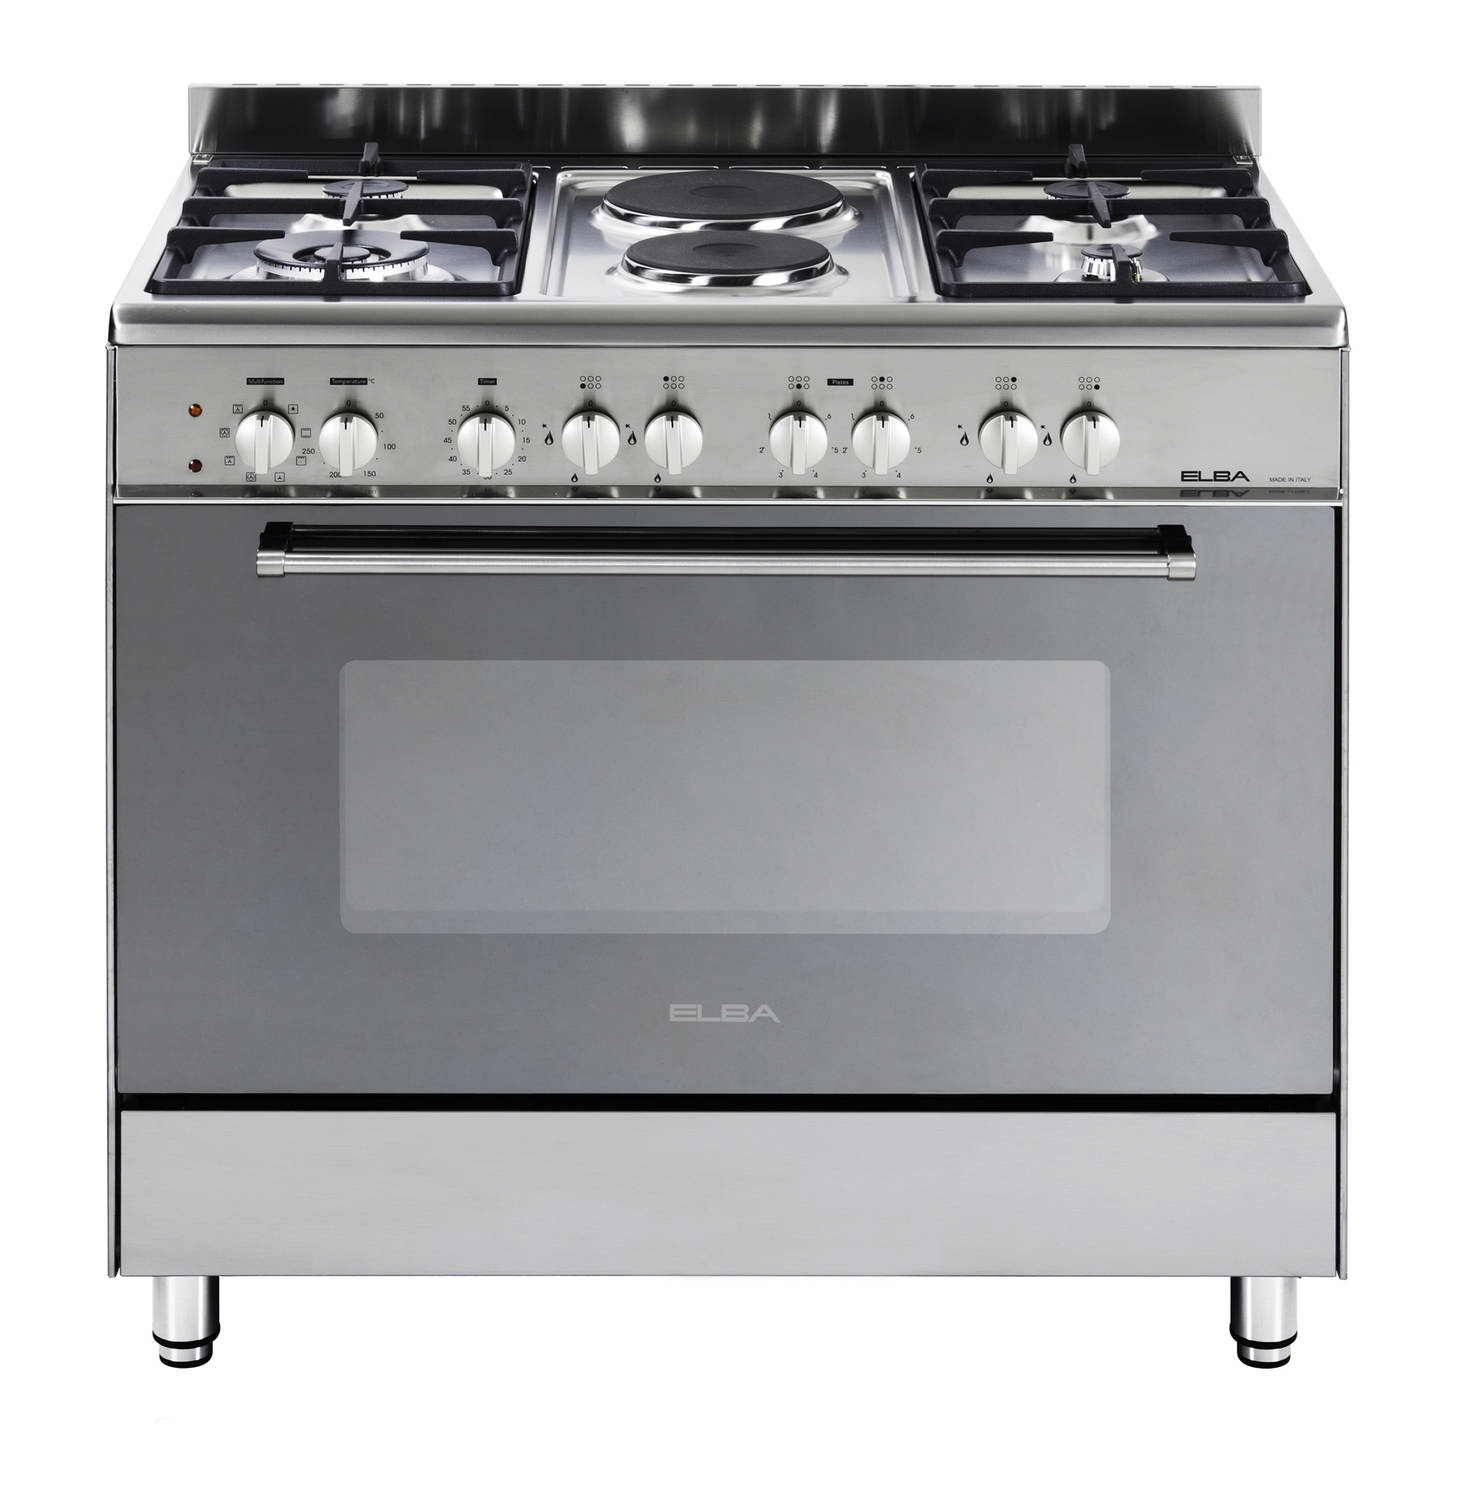 ELBA 900mm 4 Gas Burner\2 Plate Stove Stainless Steel - Lowest ...